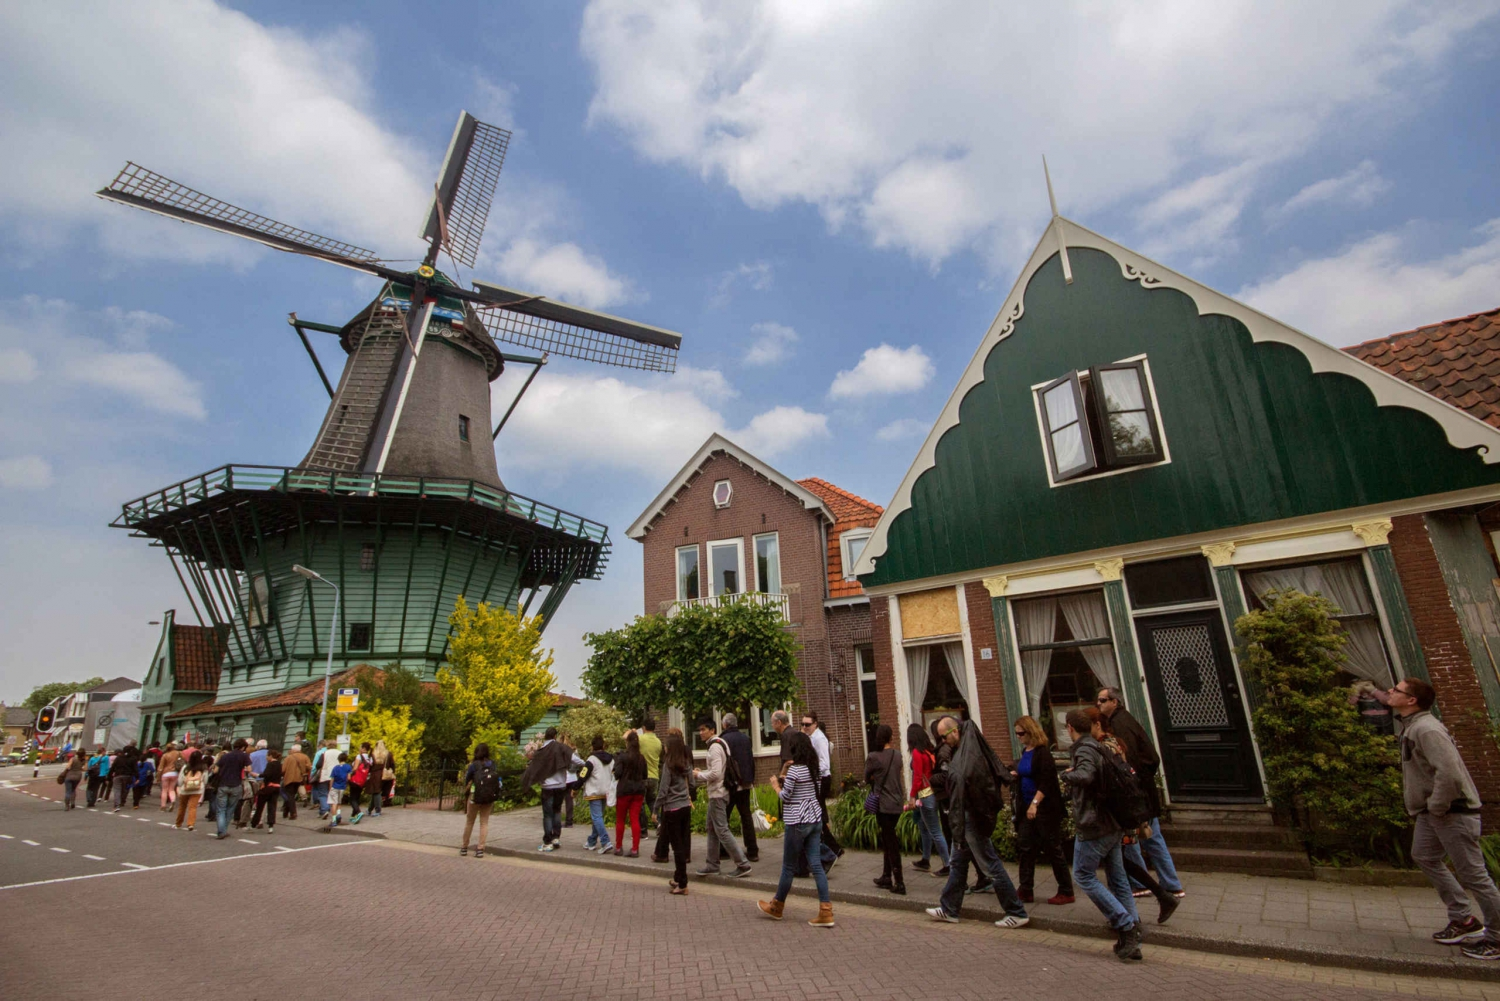 Half-Day Dutch Countryside Tour by bus from Amsterdam